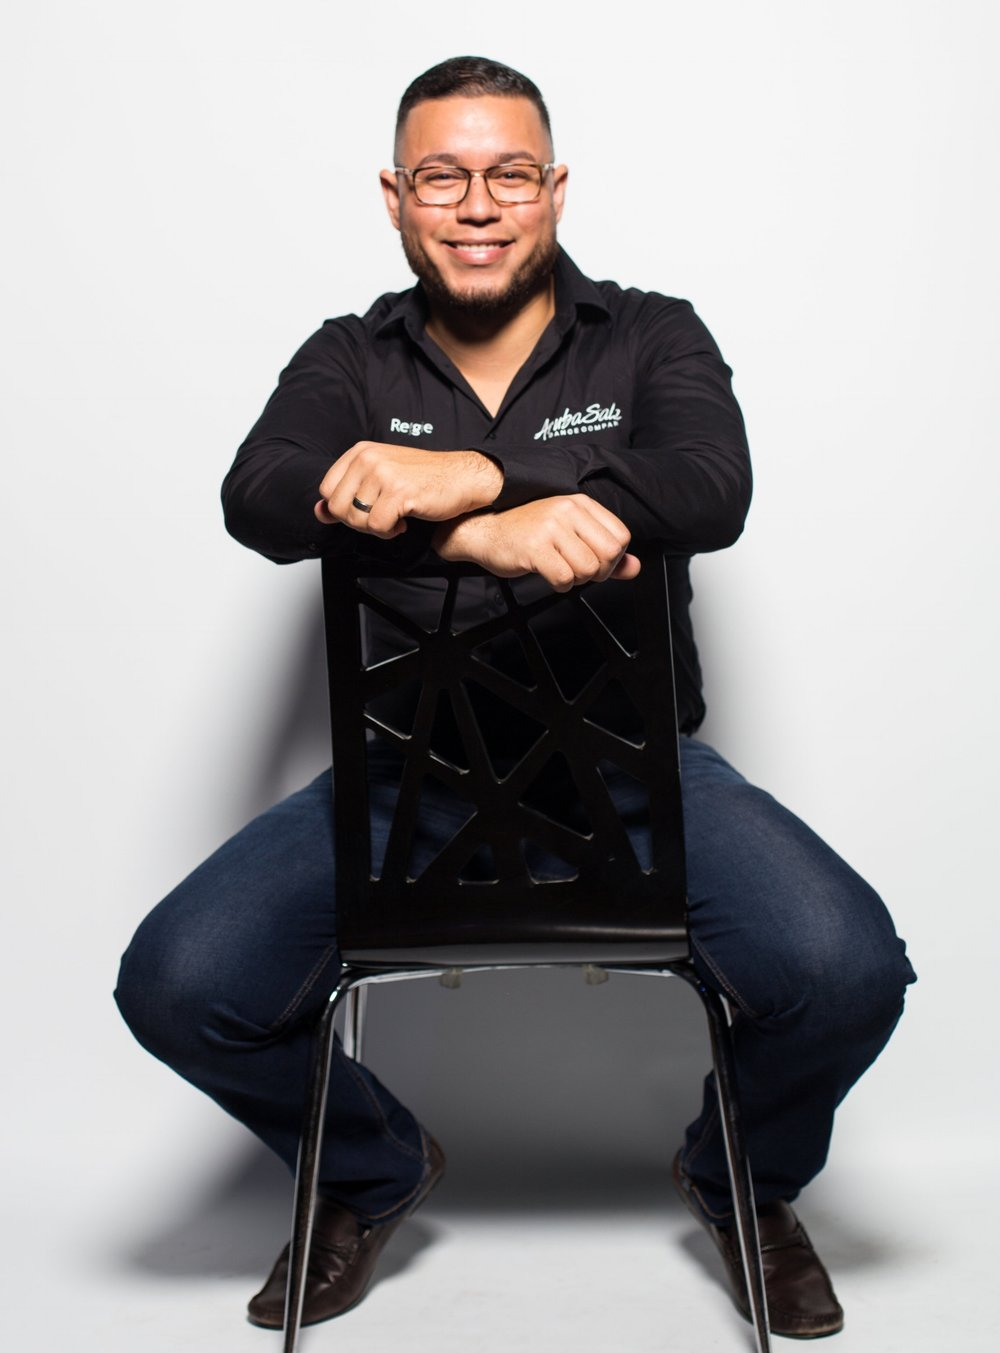 Reggie Bermudez: Managing Director & Owner - All around instructor